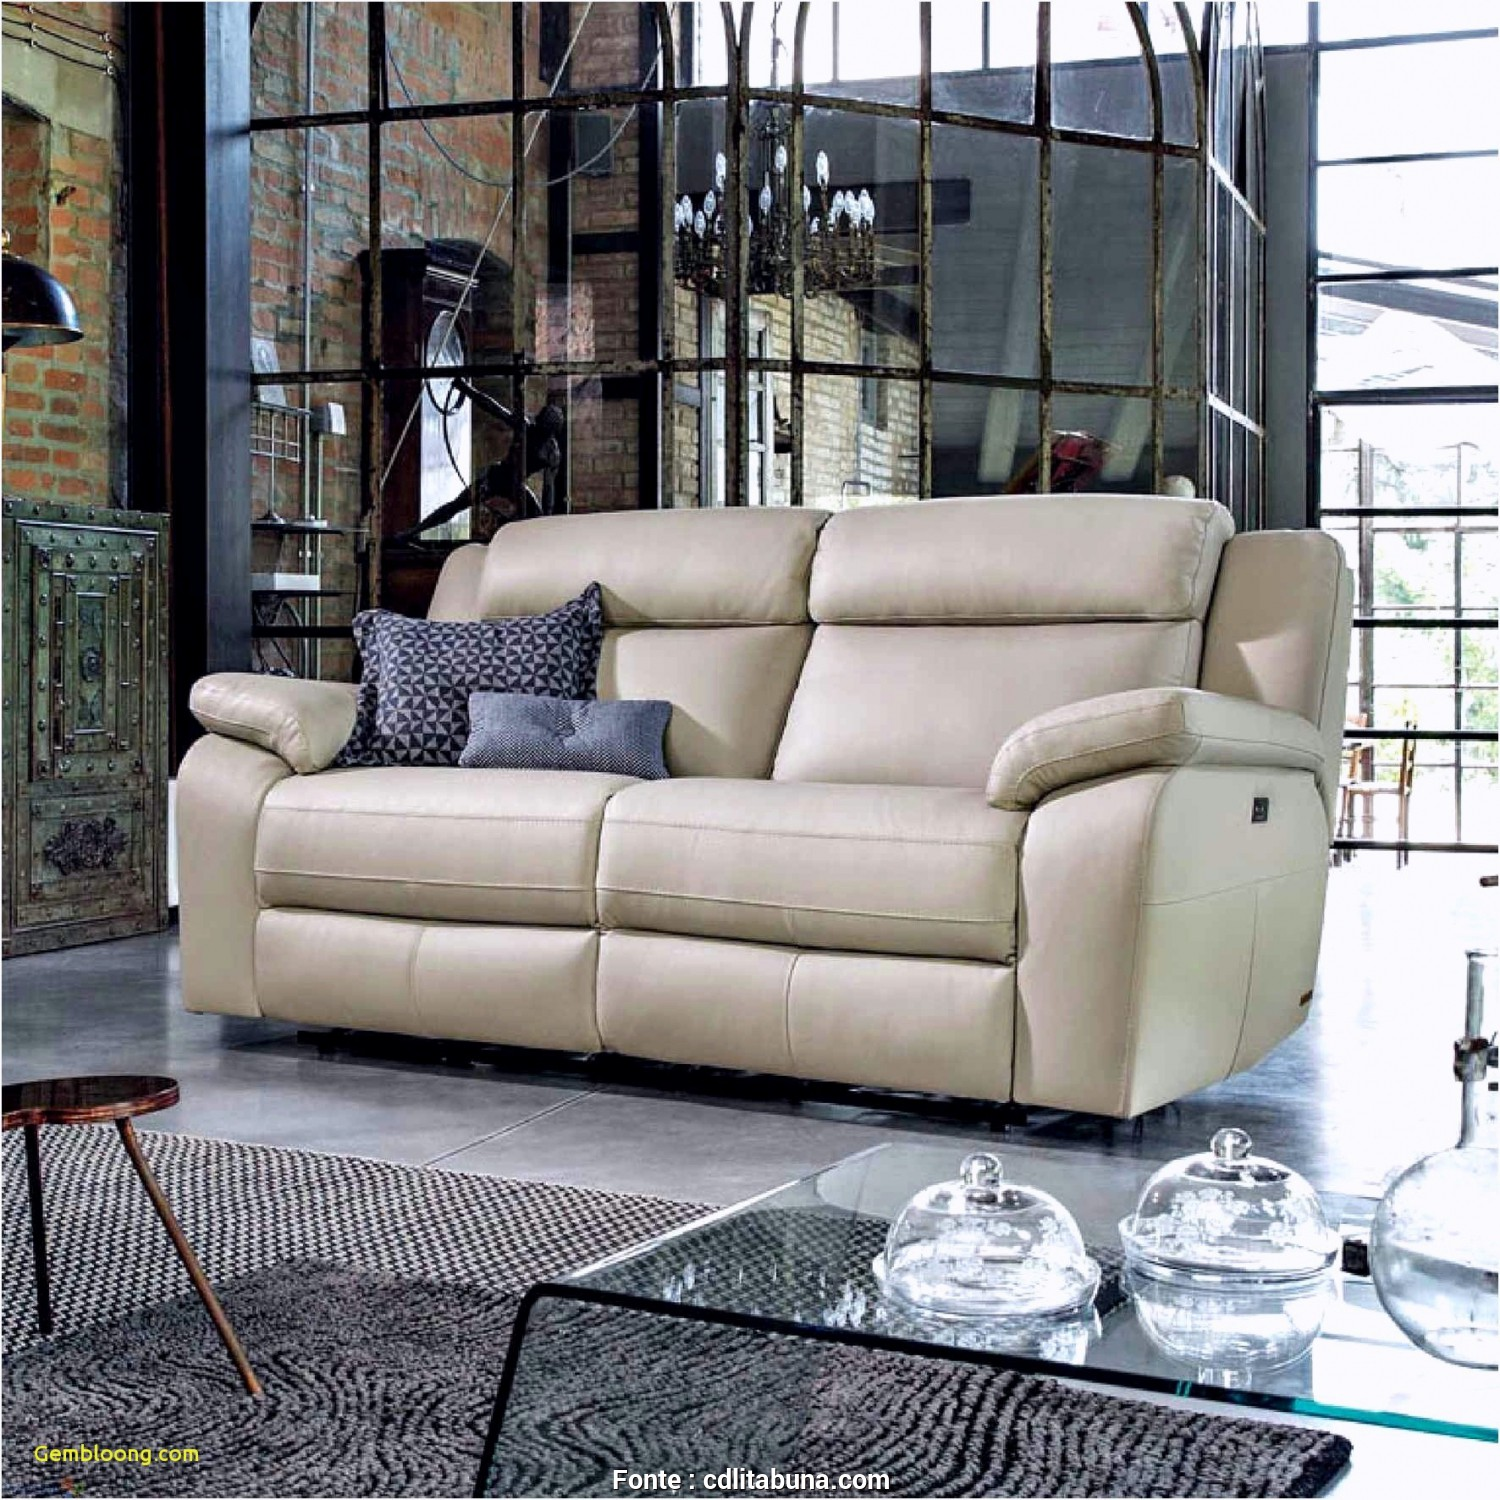 Divani In Pelle Poltrone E Sofa Divani In Pelle Poltrone E Sofa Bello Poltrone Sofa Luxe By